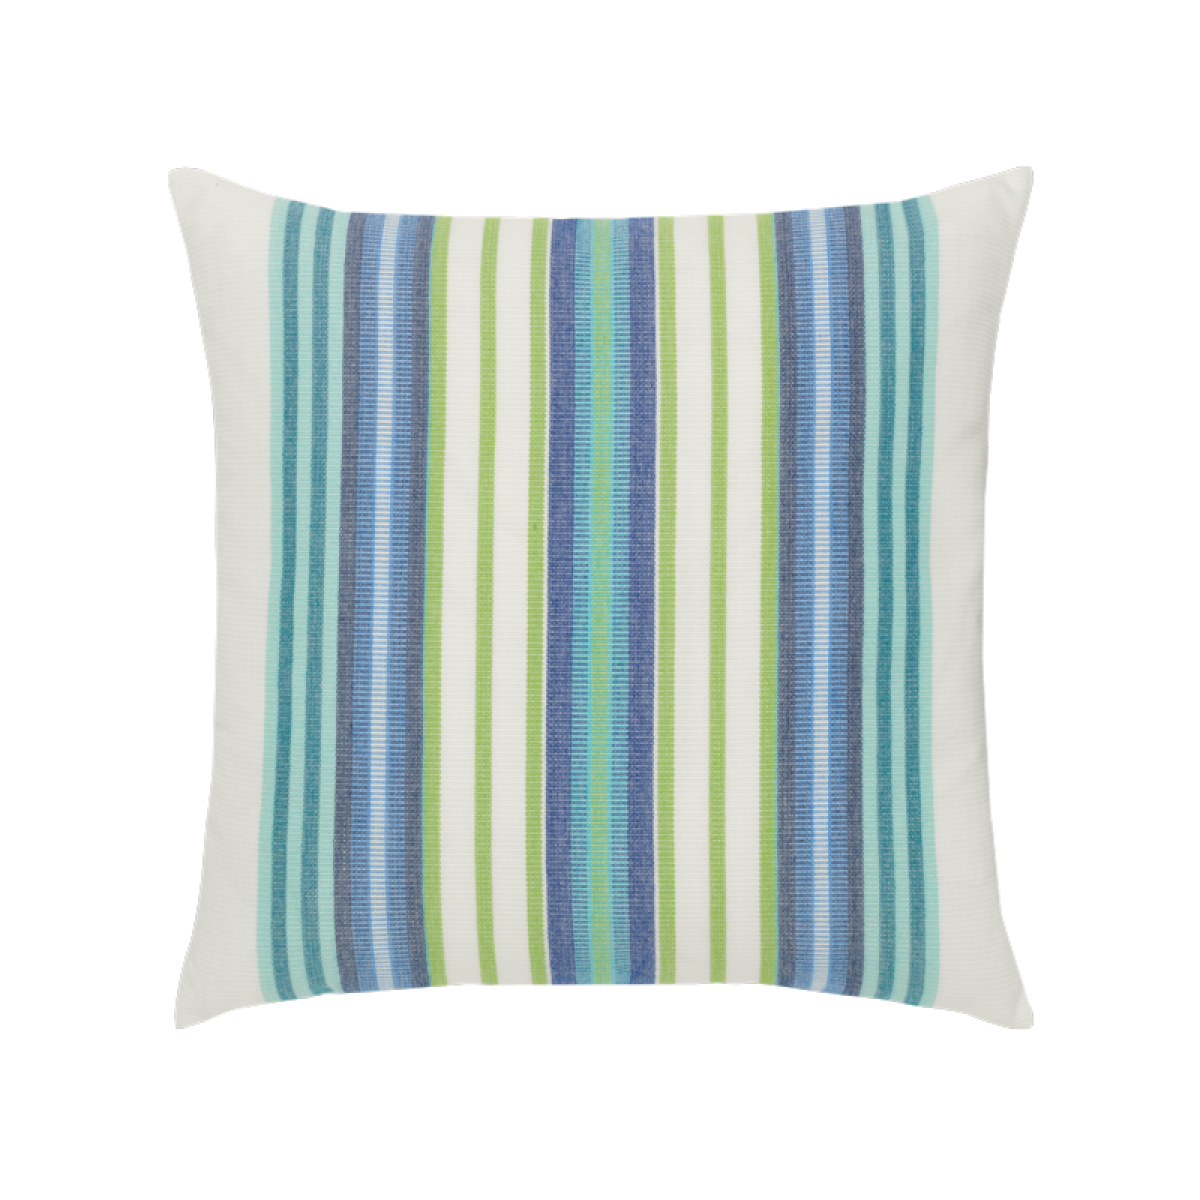 Summer Stripe - This item will ship by 9/9